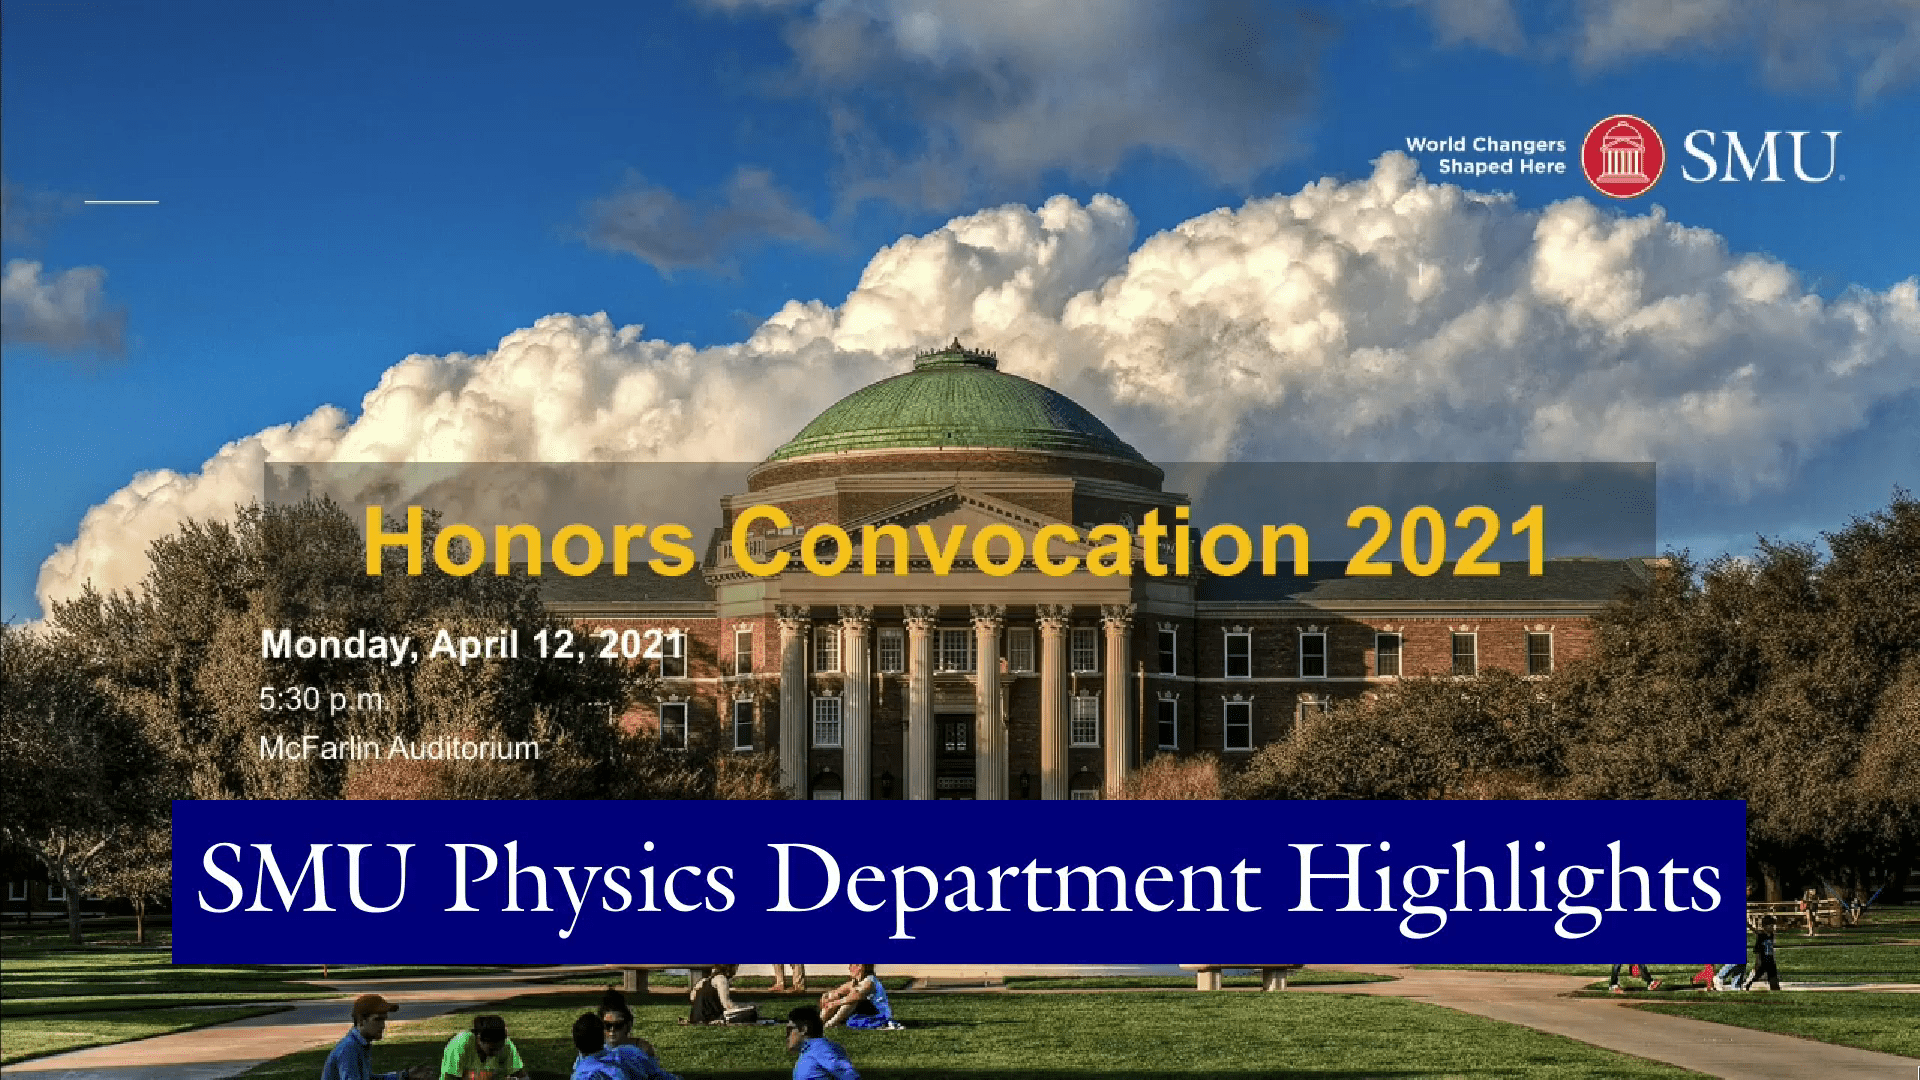 Physics Department Friday Newsletter for April 16, 2021